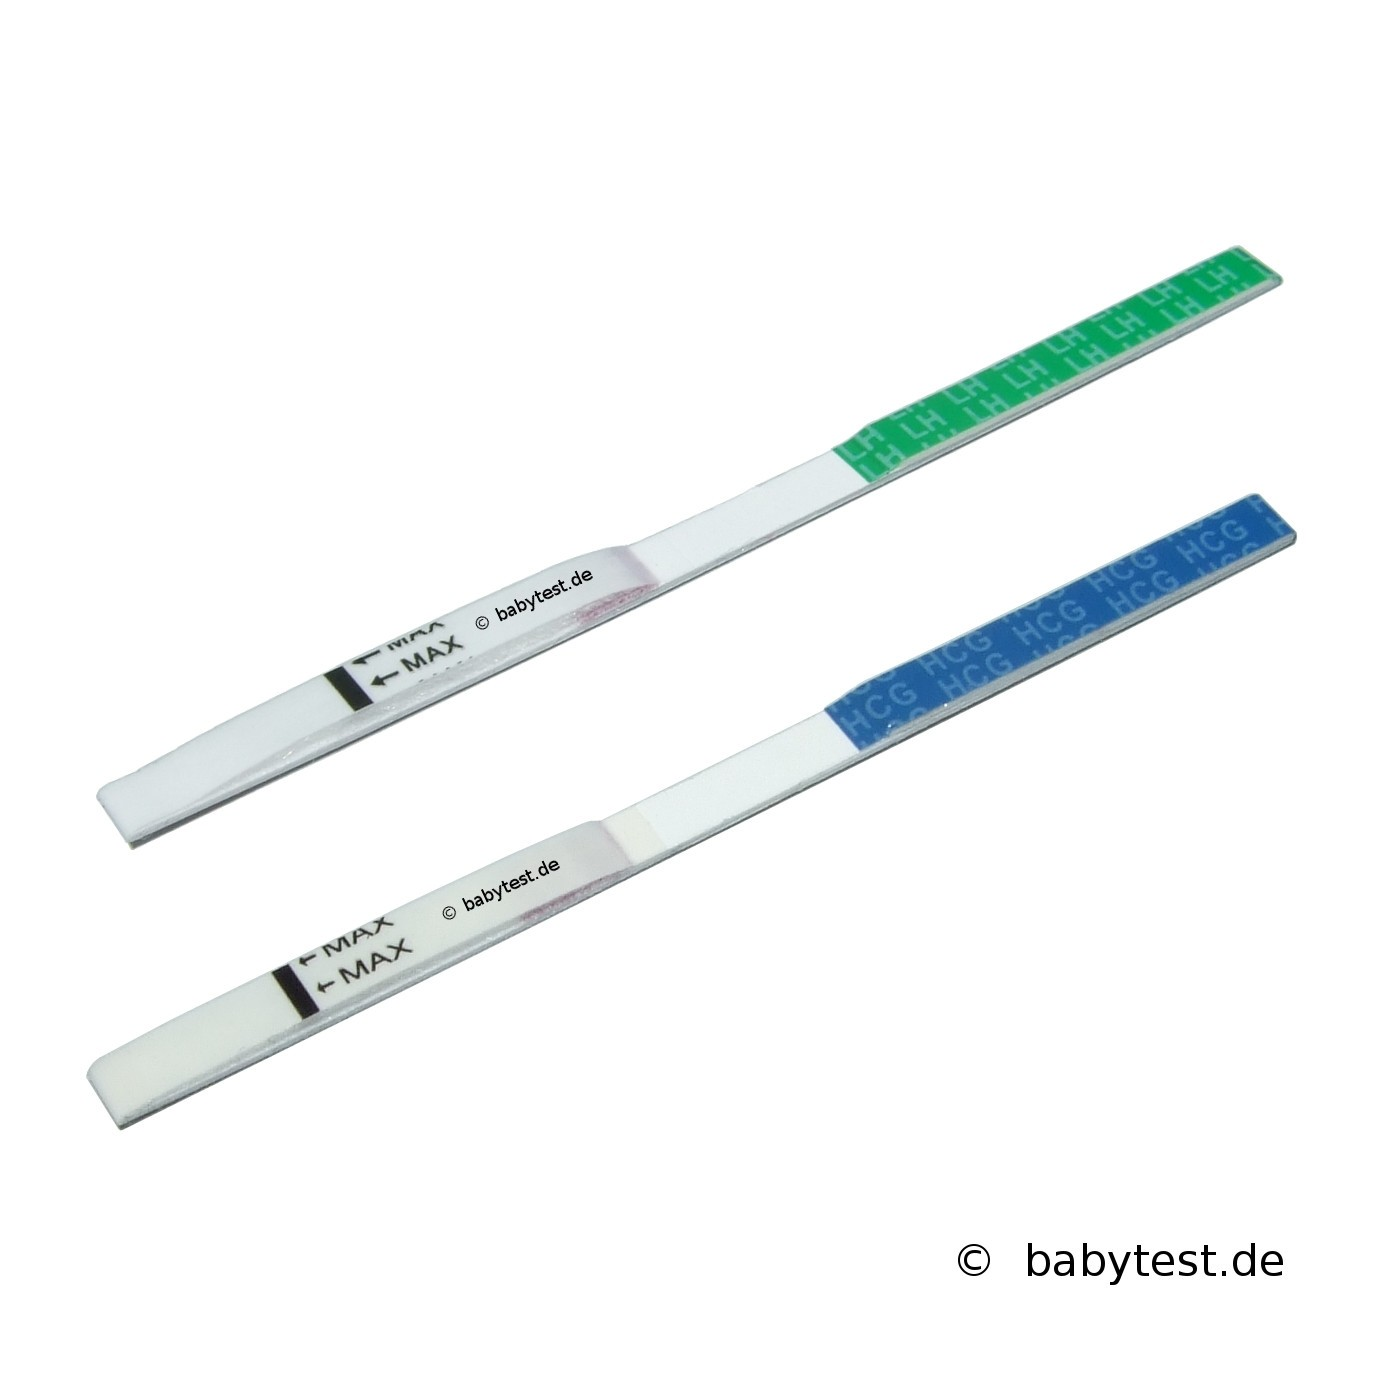 babytest-ovulationstest-50-schwangerschaftstest-20-kombination-ascimed